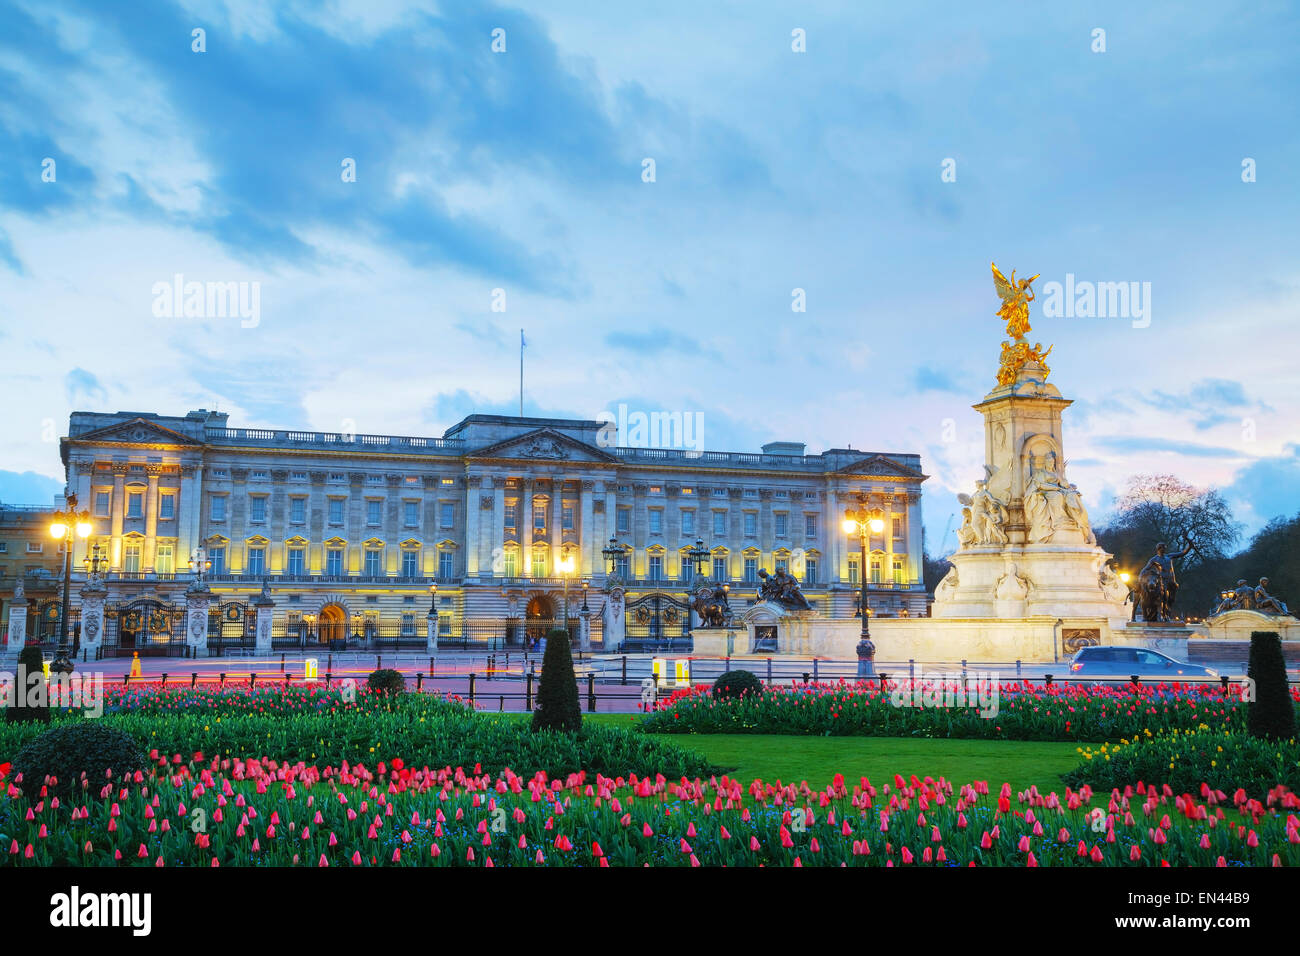 Buckingham palace in London, Great Britain at sunset - Stock Image